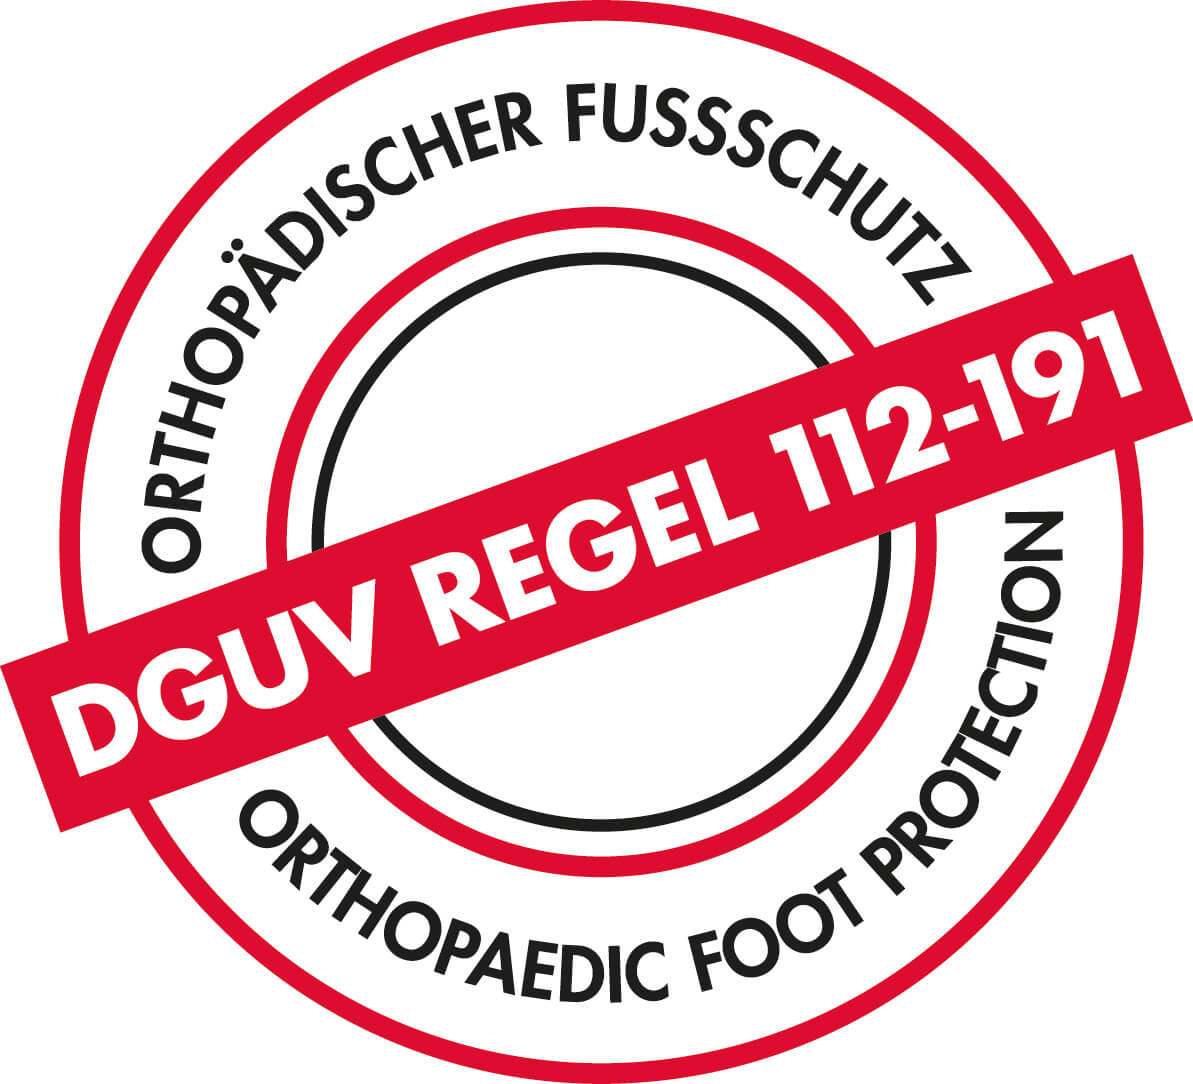 orthopedische inlegzool DGUV-regel